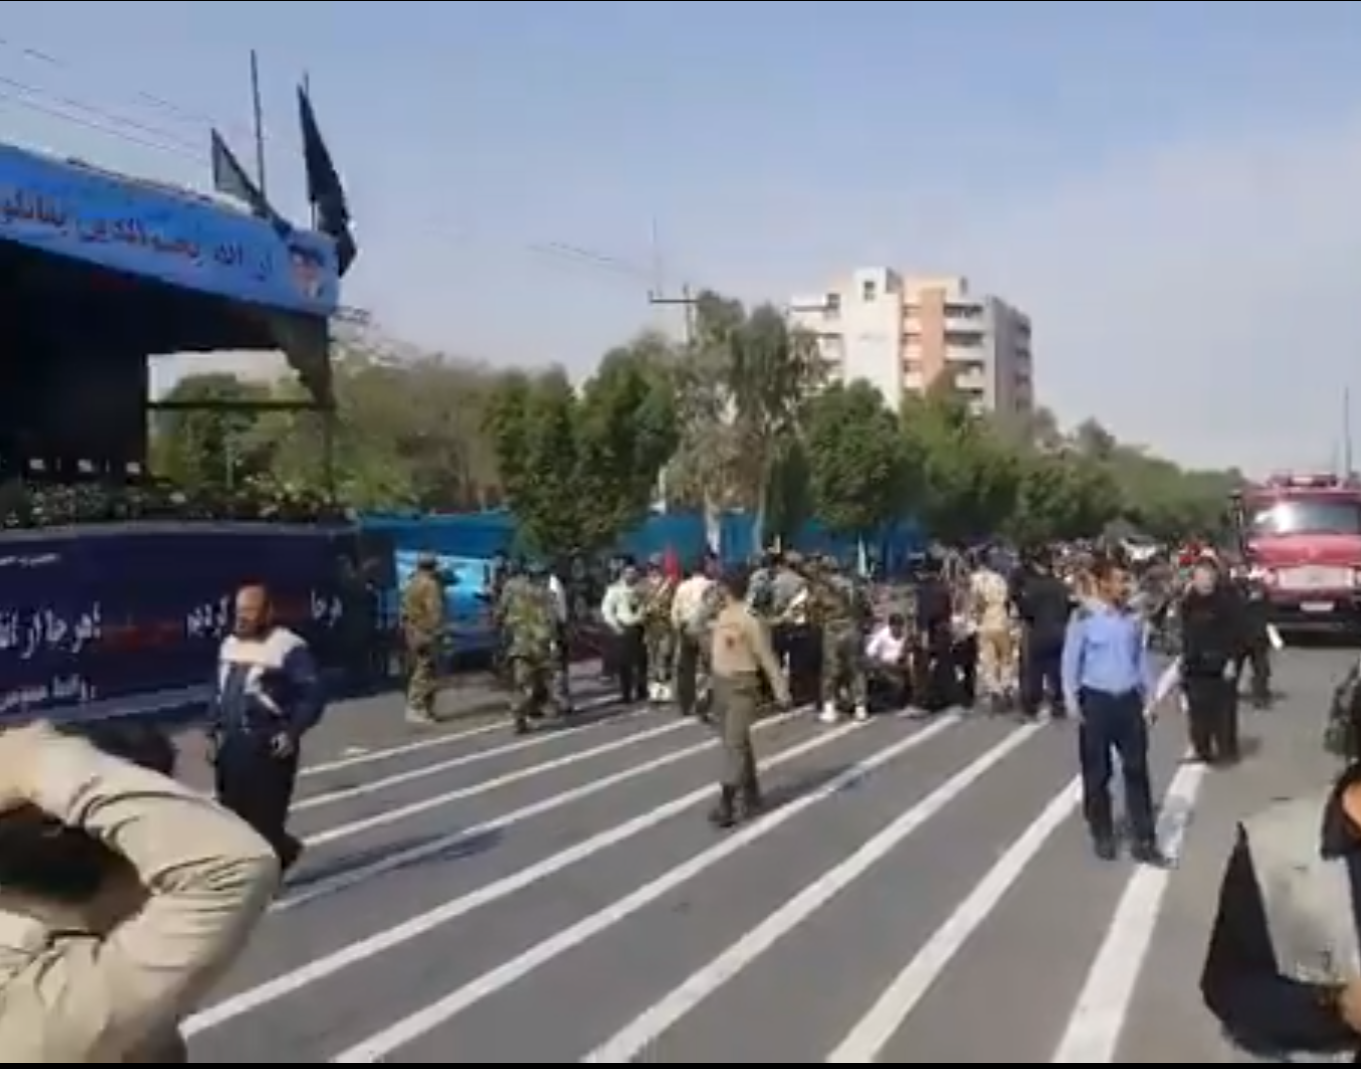 Several members of Iran's elite military guard killed in parade gun attack